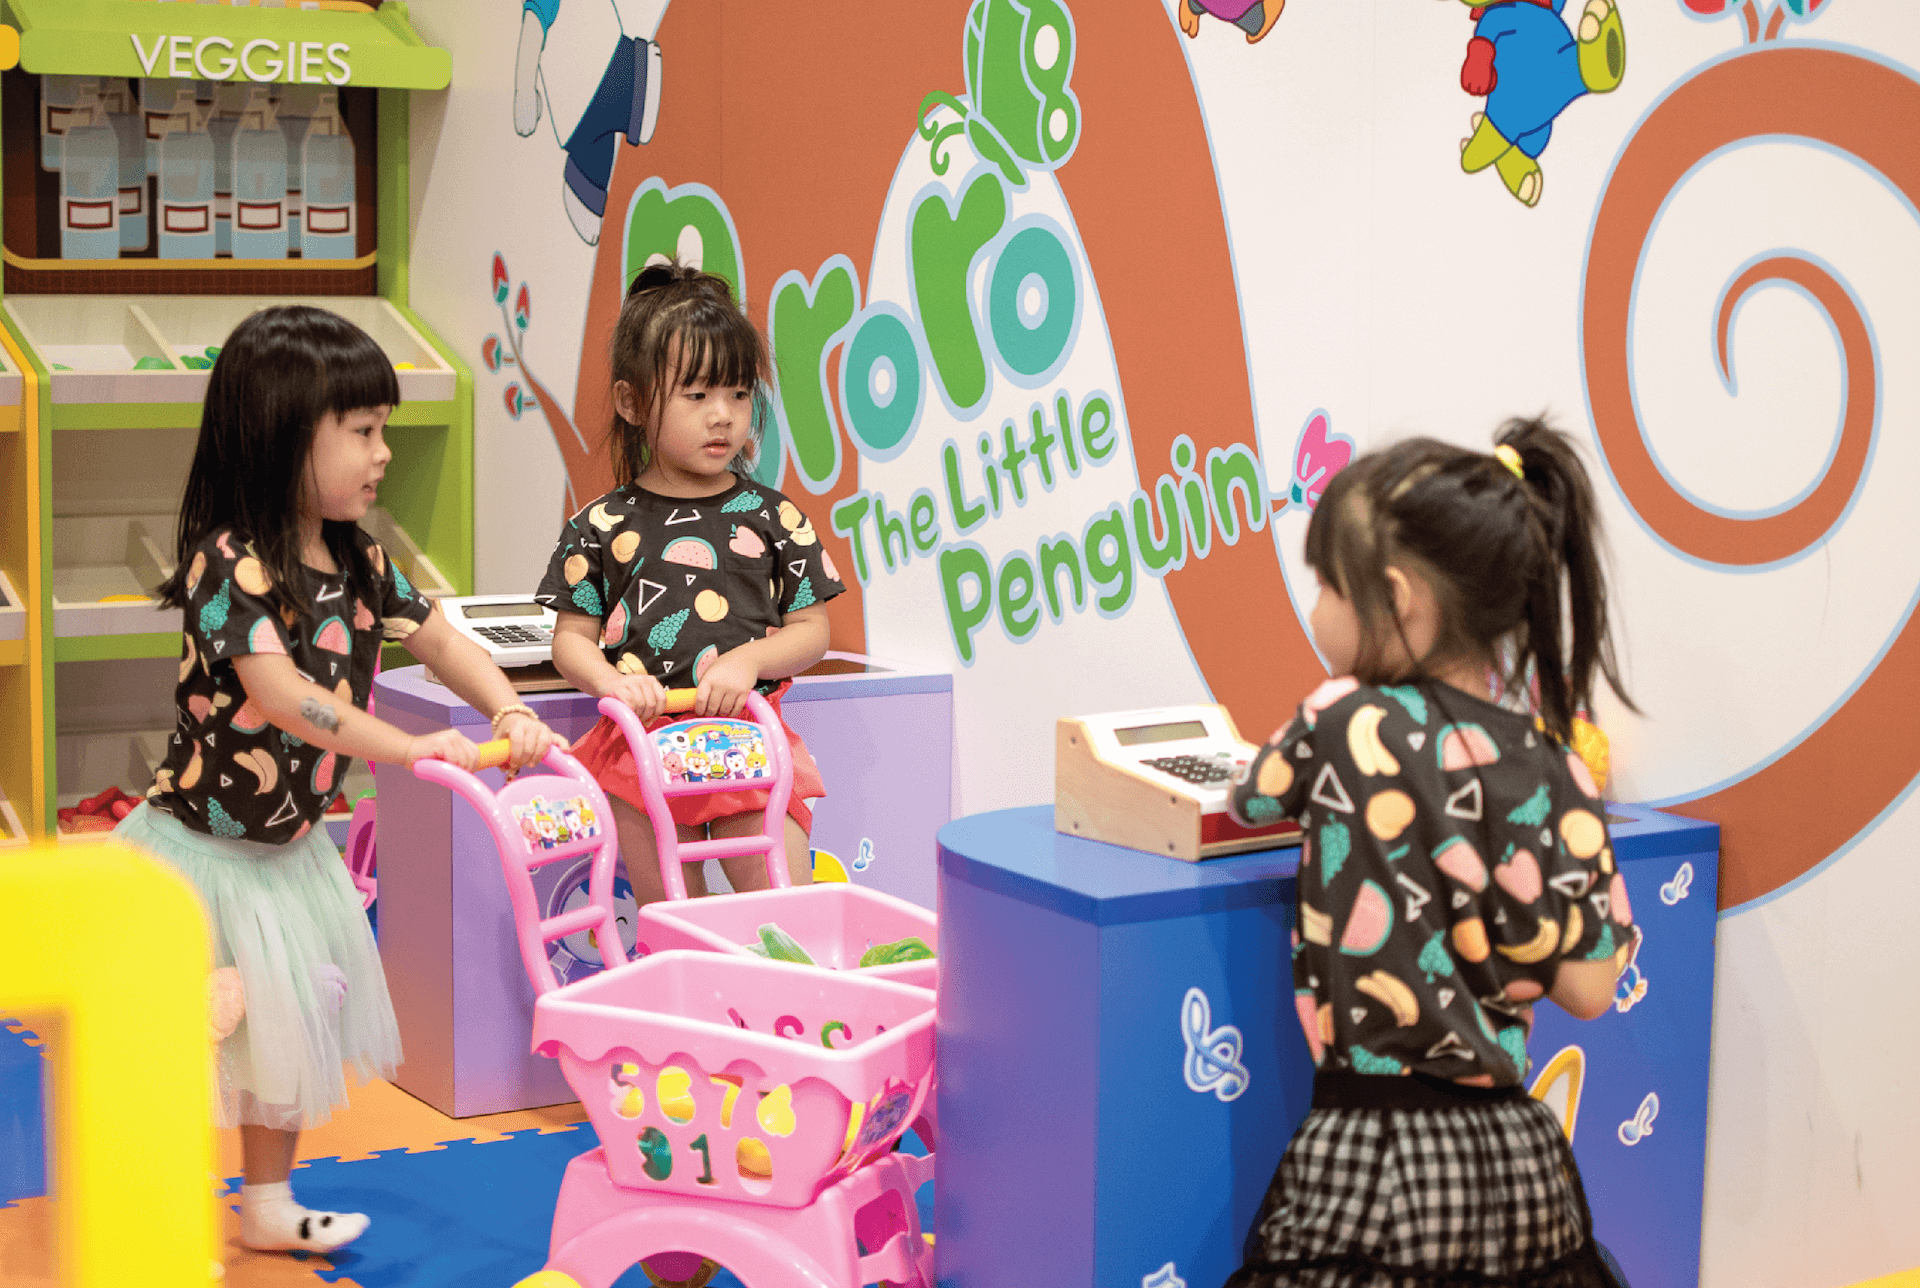 Petty Supermarket Attraction at Pororo Park Singapore